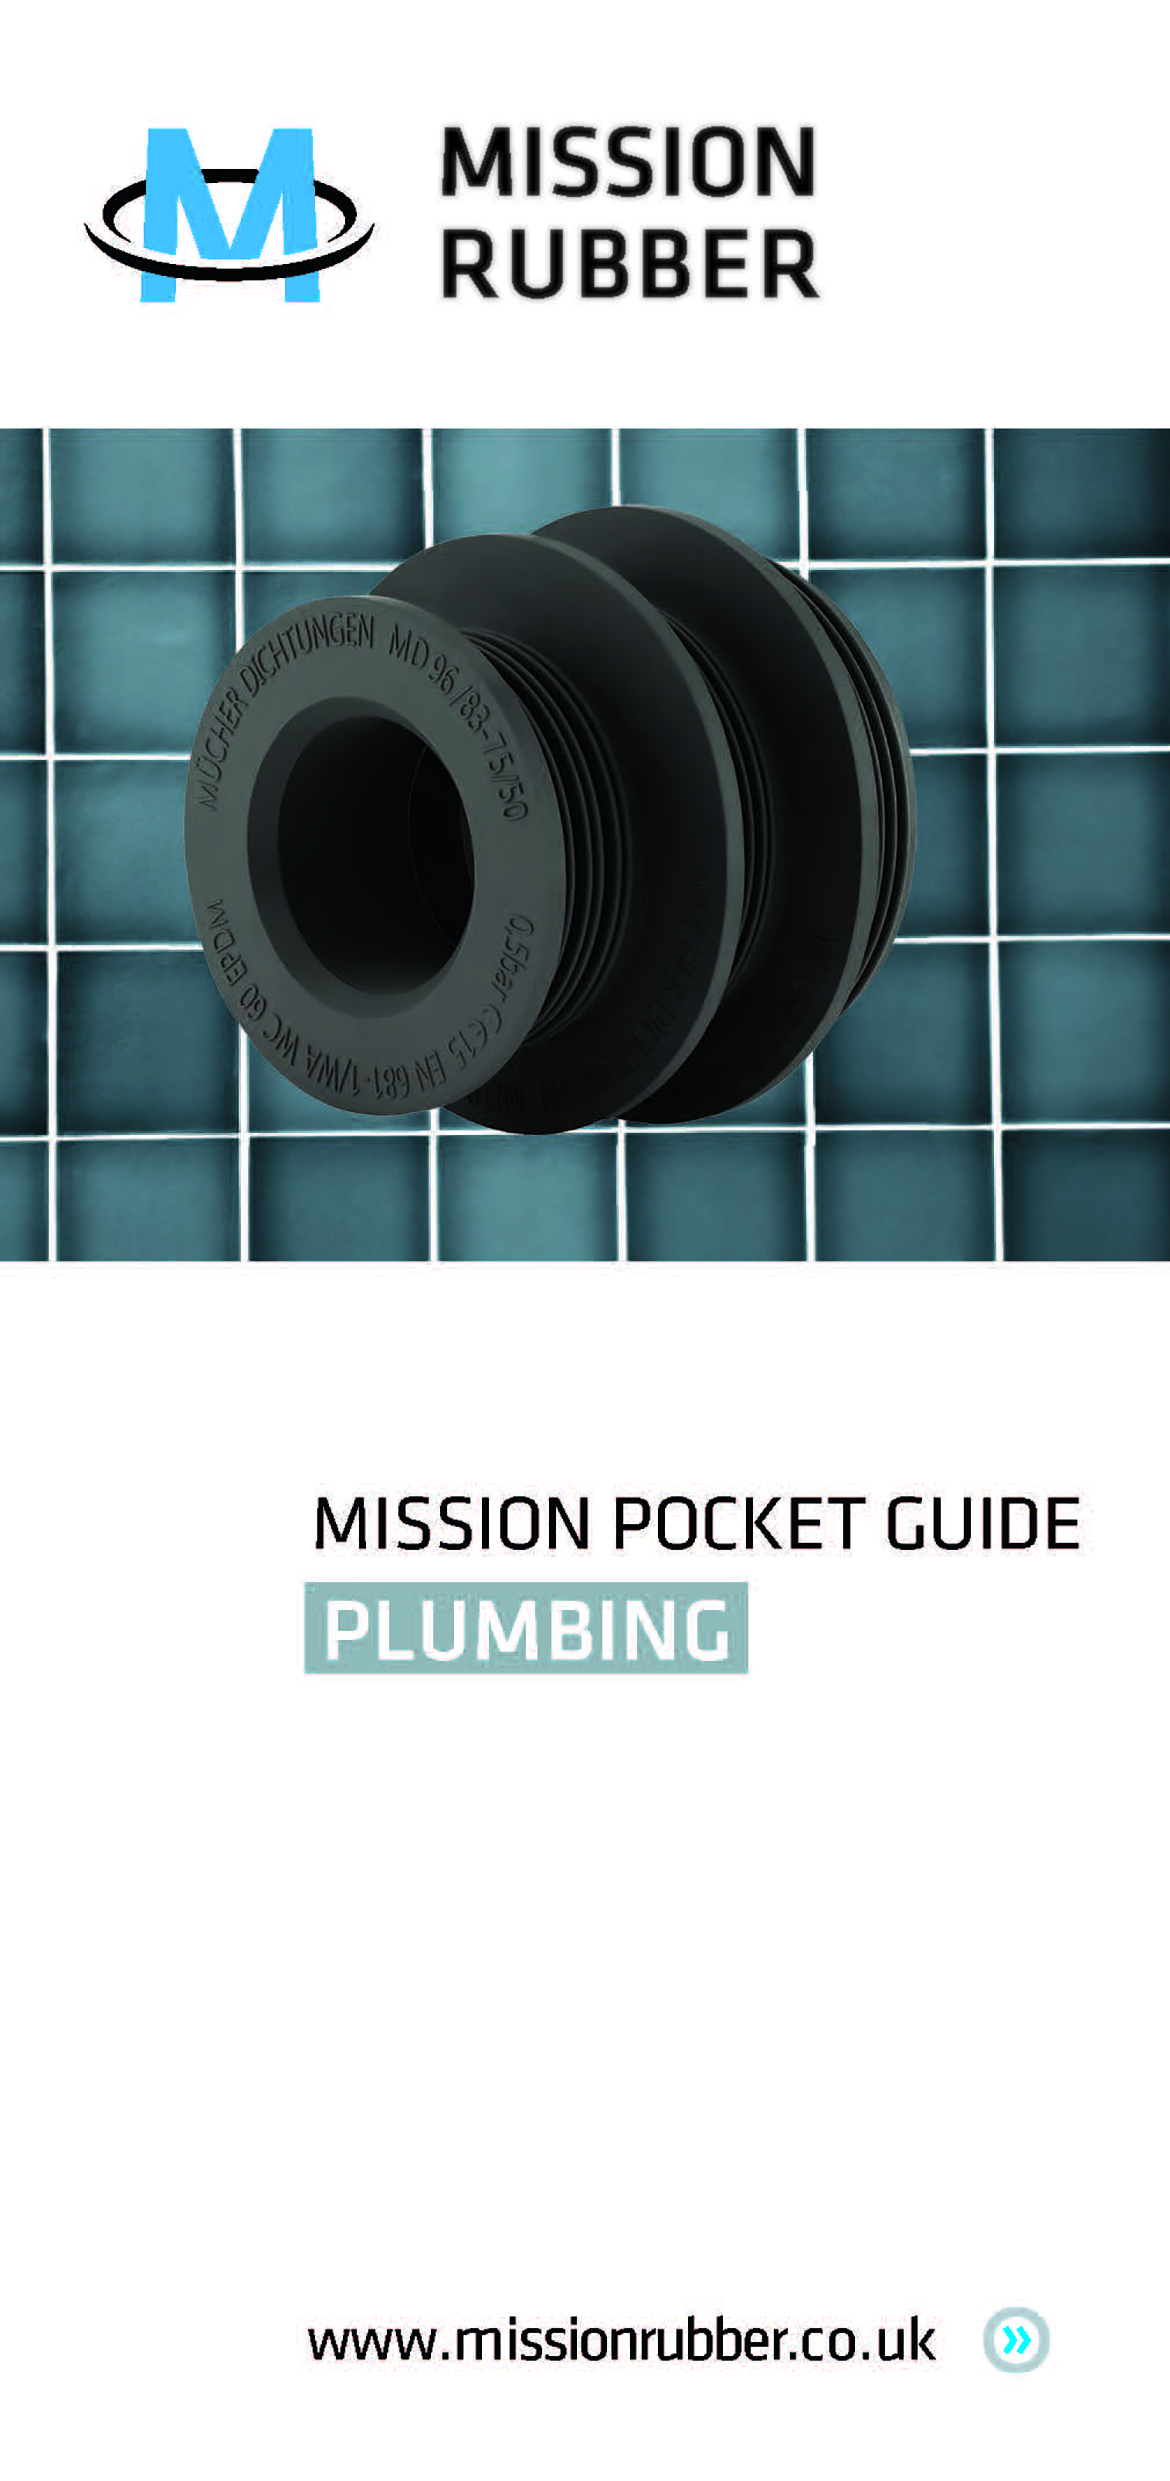 Deckblatt Pocket Guide Plumbing